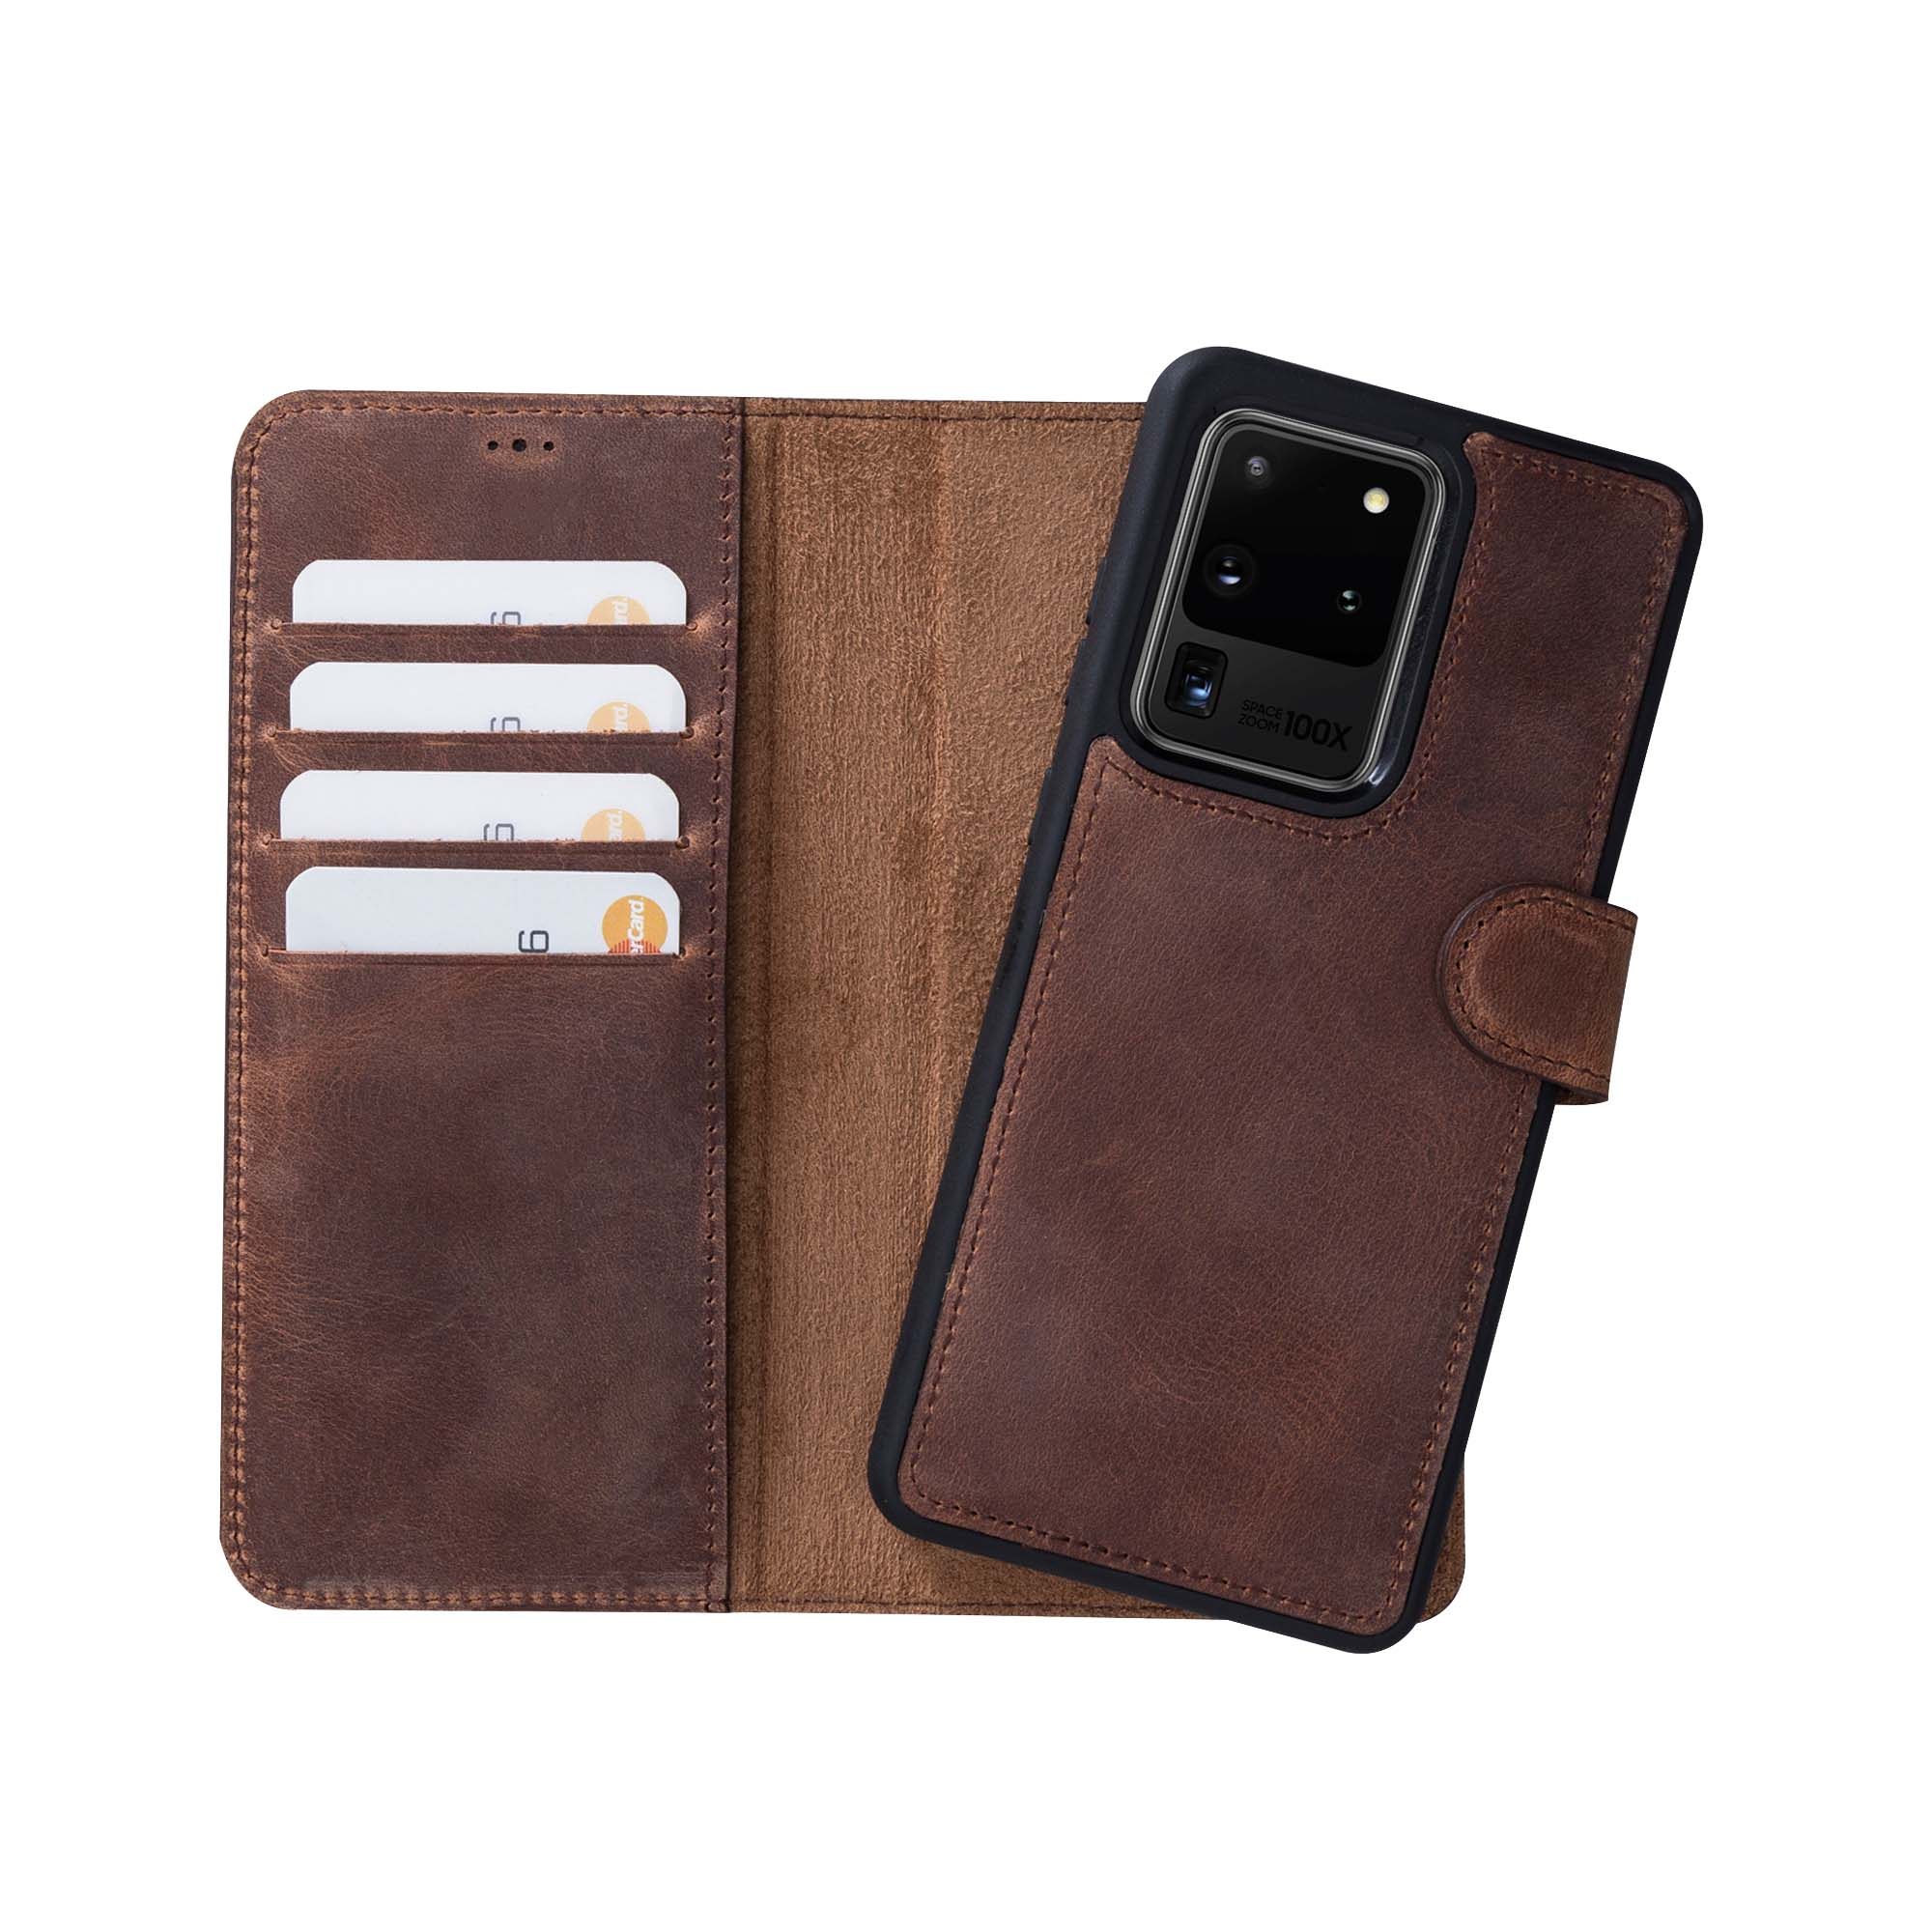 "Magic Magnetic Detachable Leather Wallet Case for Samsung Galaxy S20 Ultra (6.9"") - BROWN - saracleather"